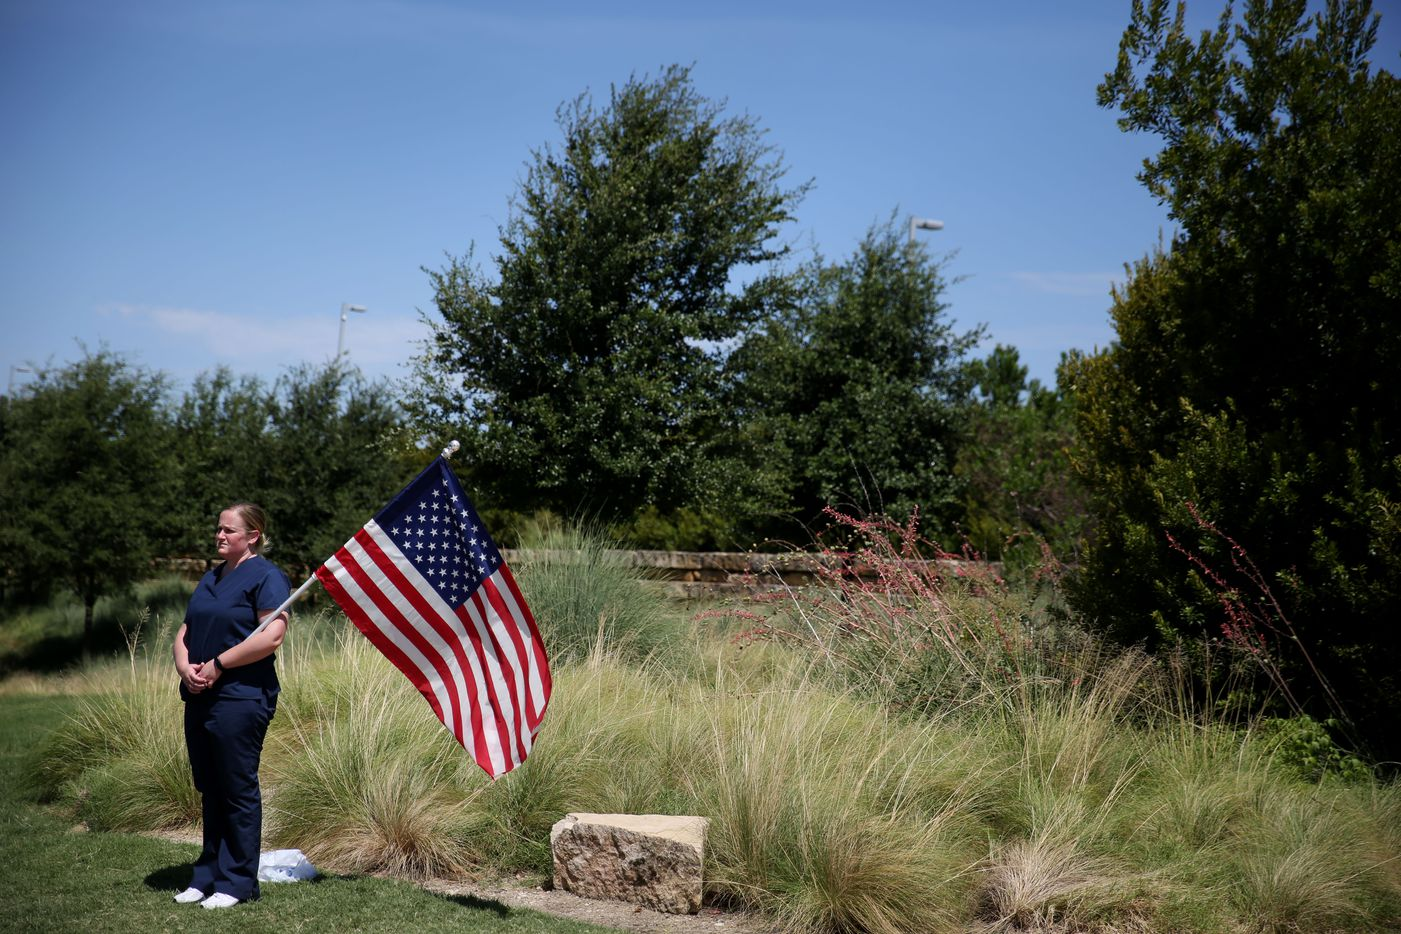 Rebecca Duncan, of Carrollton, Texas, stands outside with the flag of the United States before the funeral for Dallas police sergeant Michael Smith at Watermark Church in Dallas Thursday July 14, 2016. Smith and four other officers were killed during an attack following a peaceful Black Lives Matter protest on July 7. (Andy Jacobsohn/Staff Photographer)